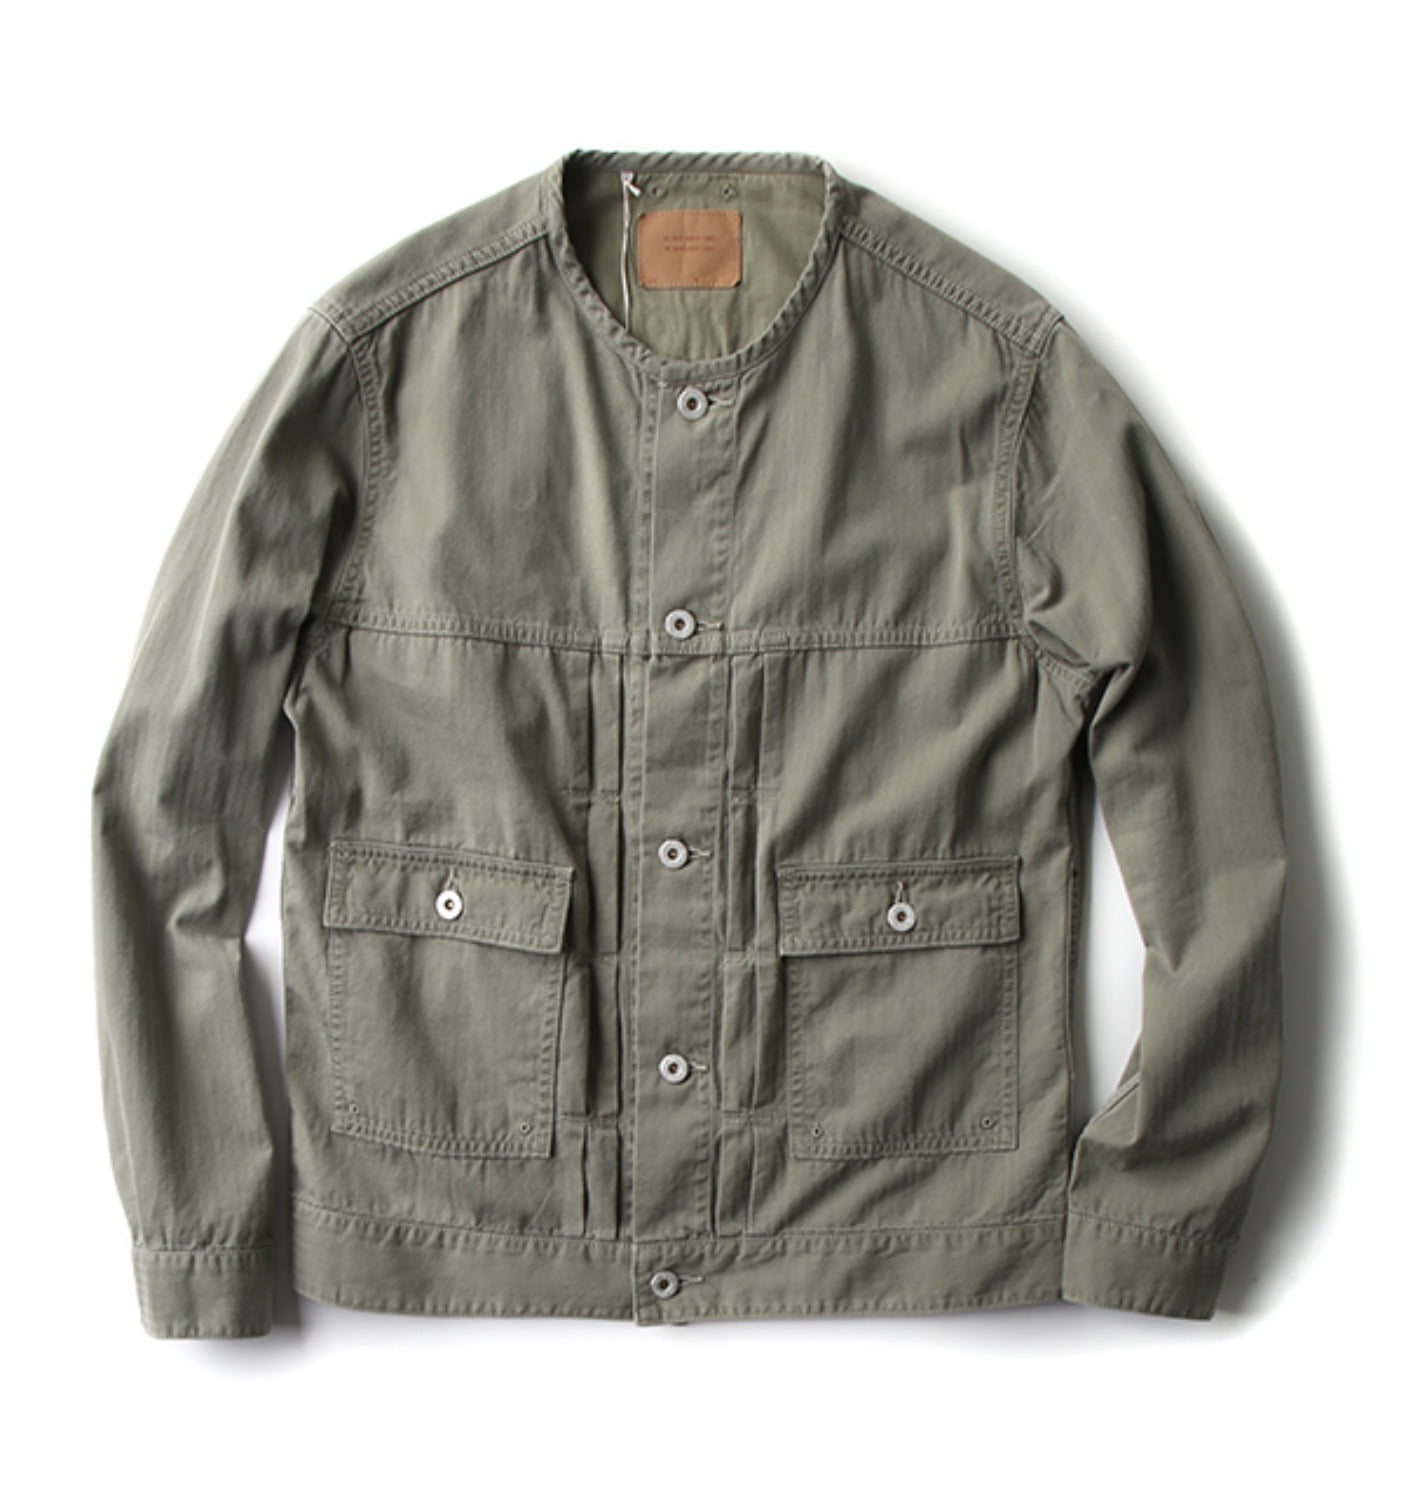 ENGINEERED OLIVE